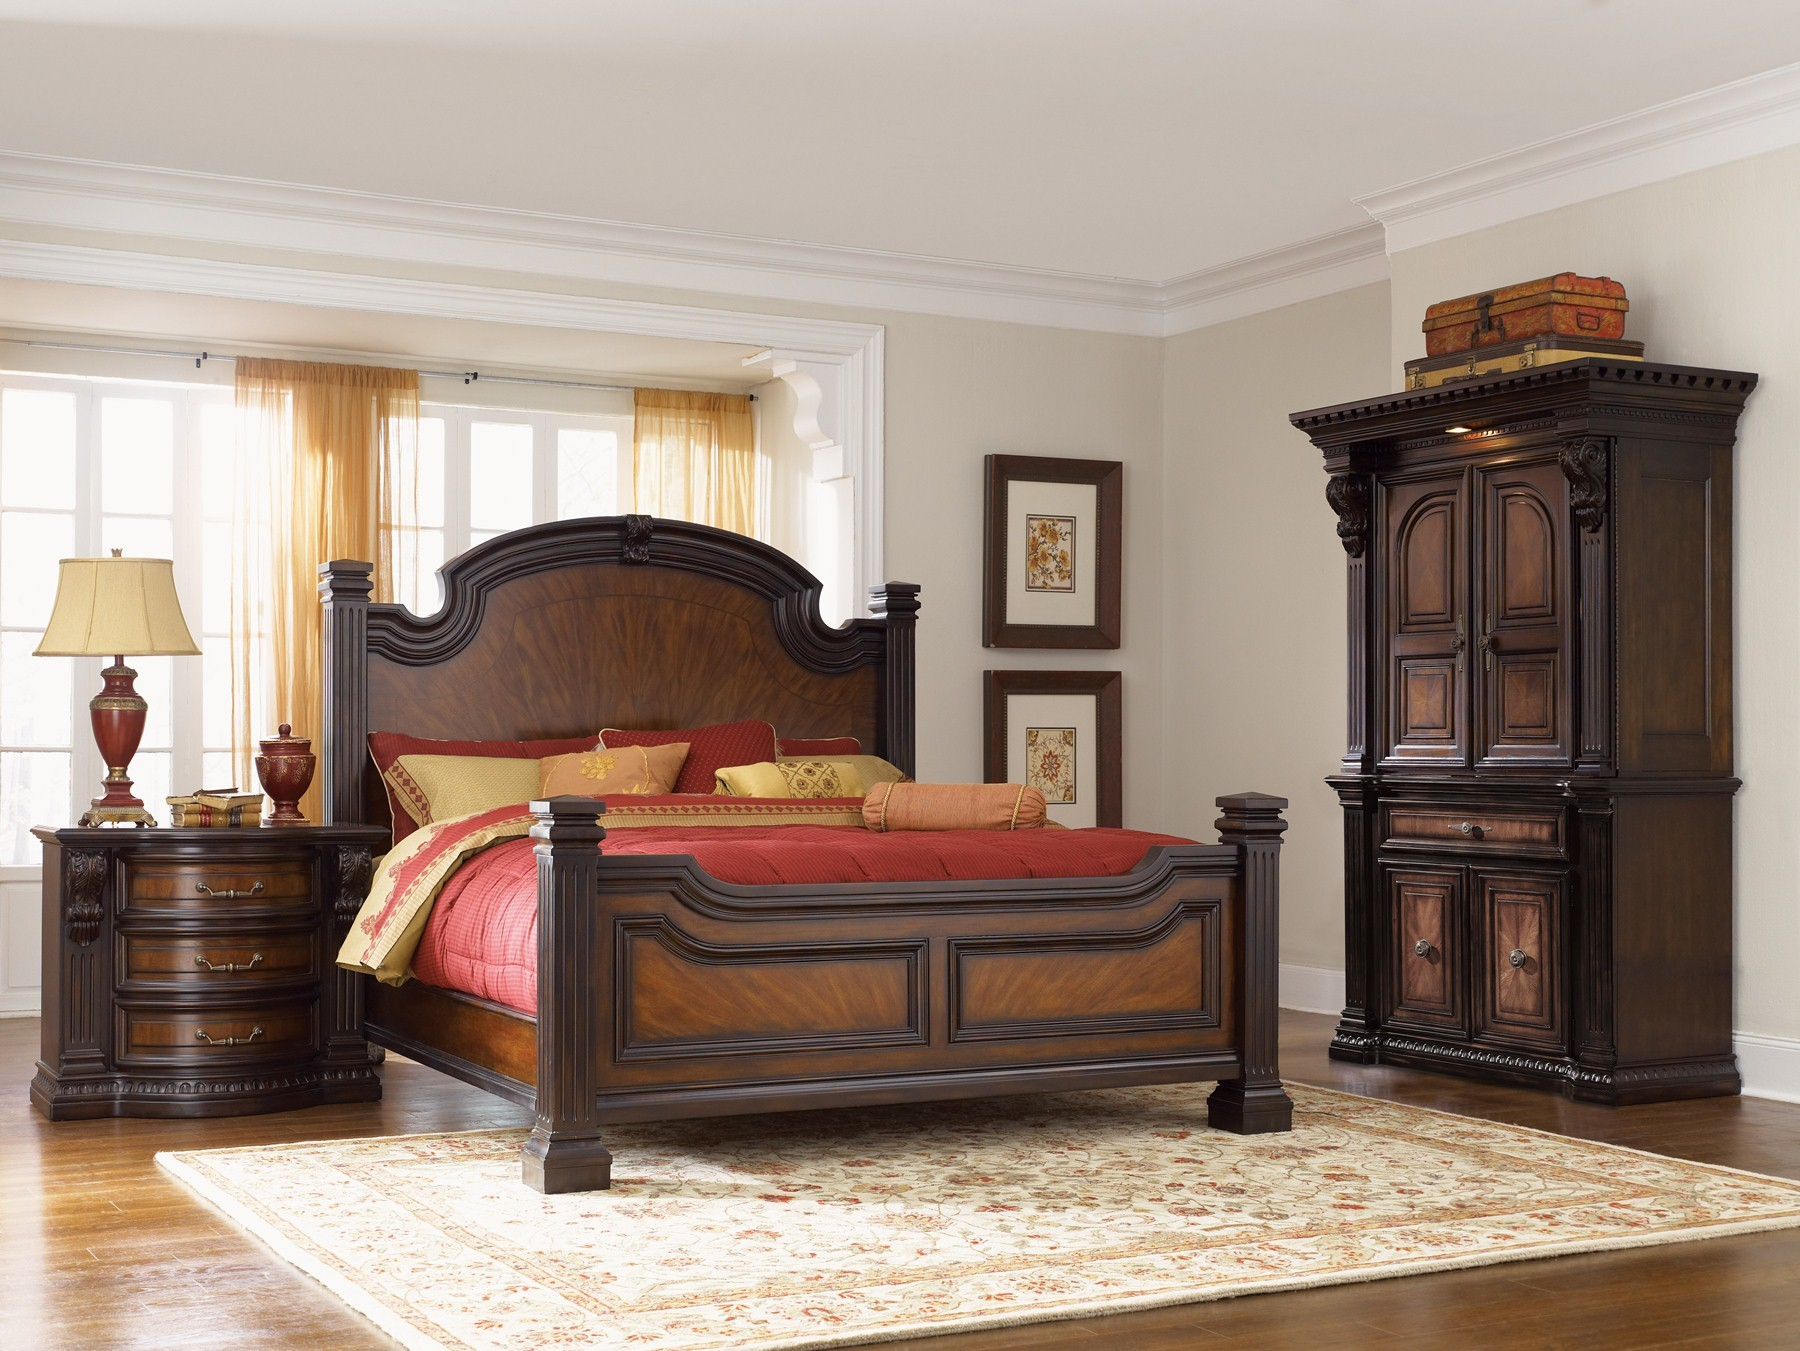 Fairmont designs grand estates panel bedroom set c7102 for Grand bedroom designs